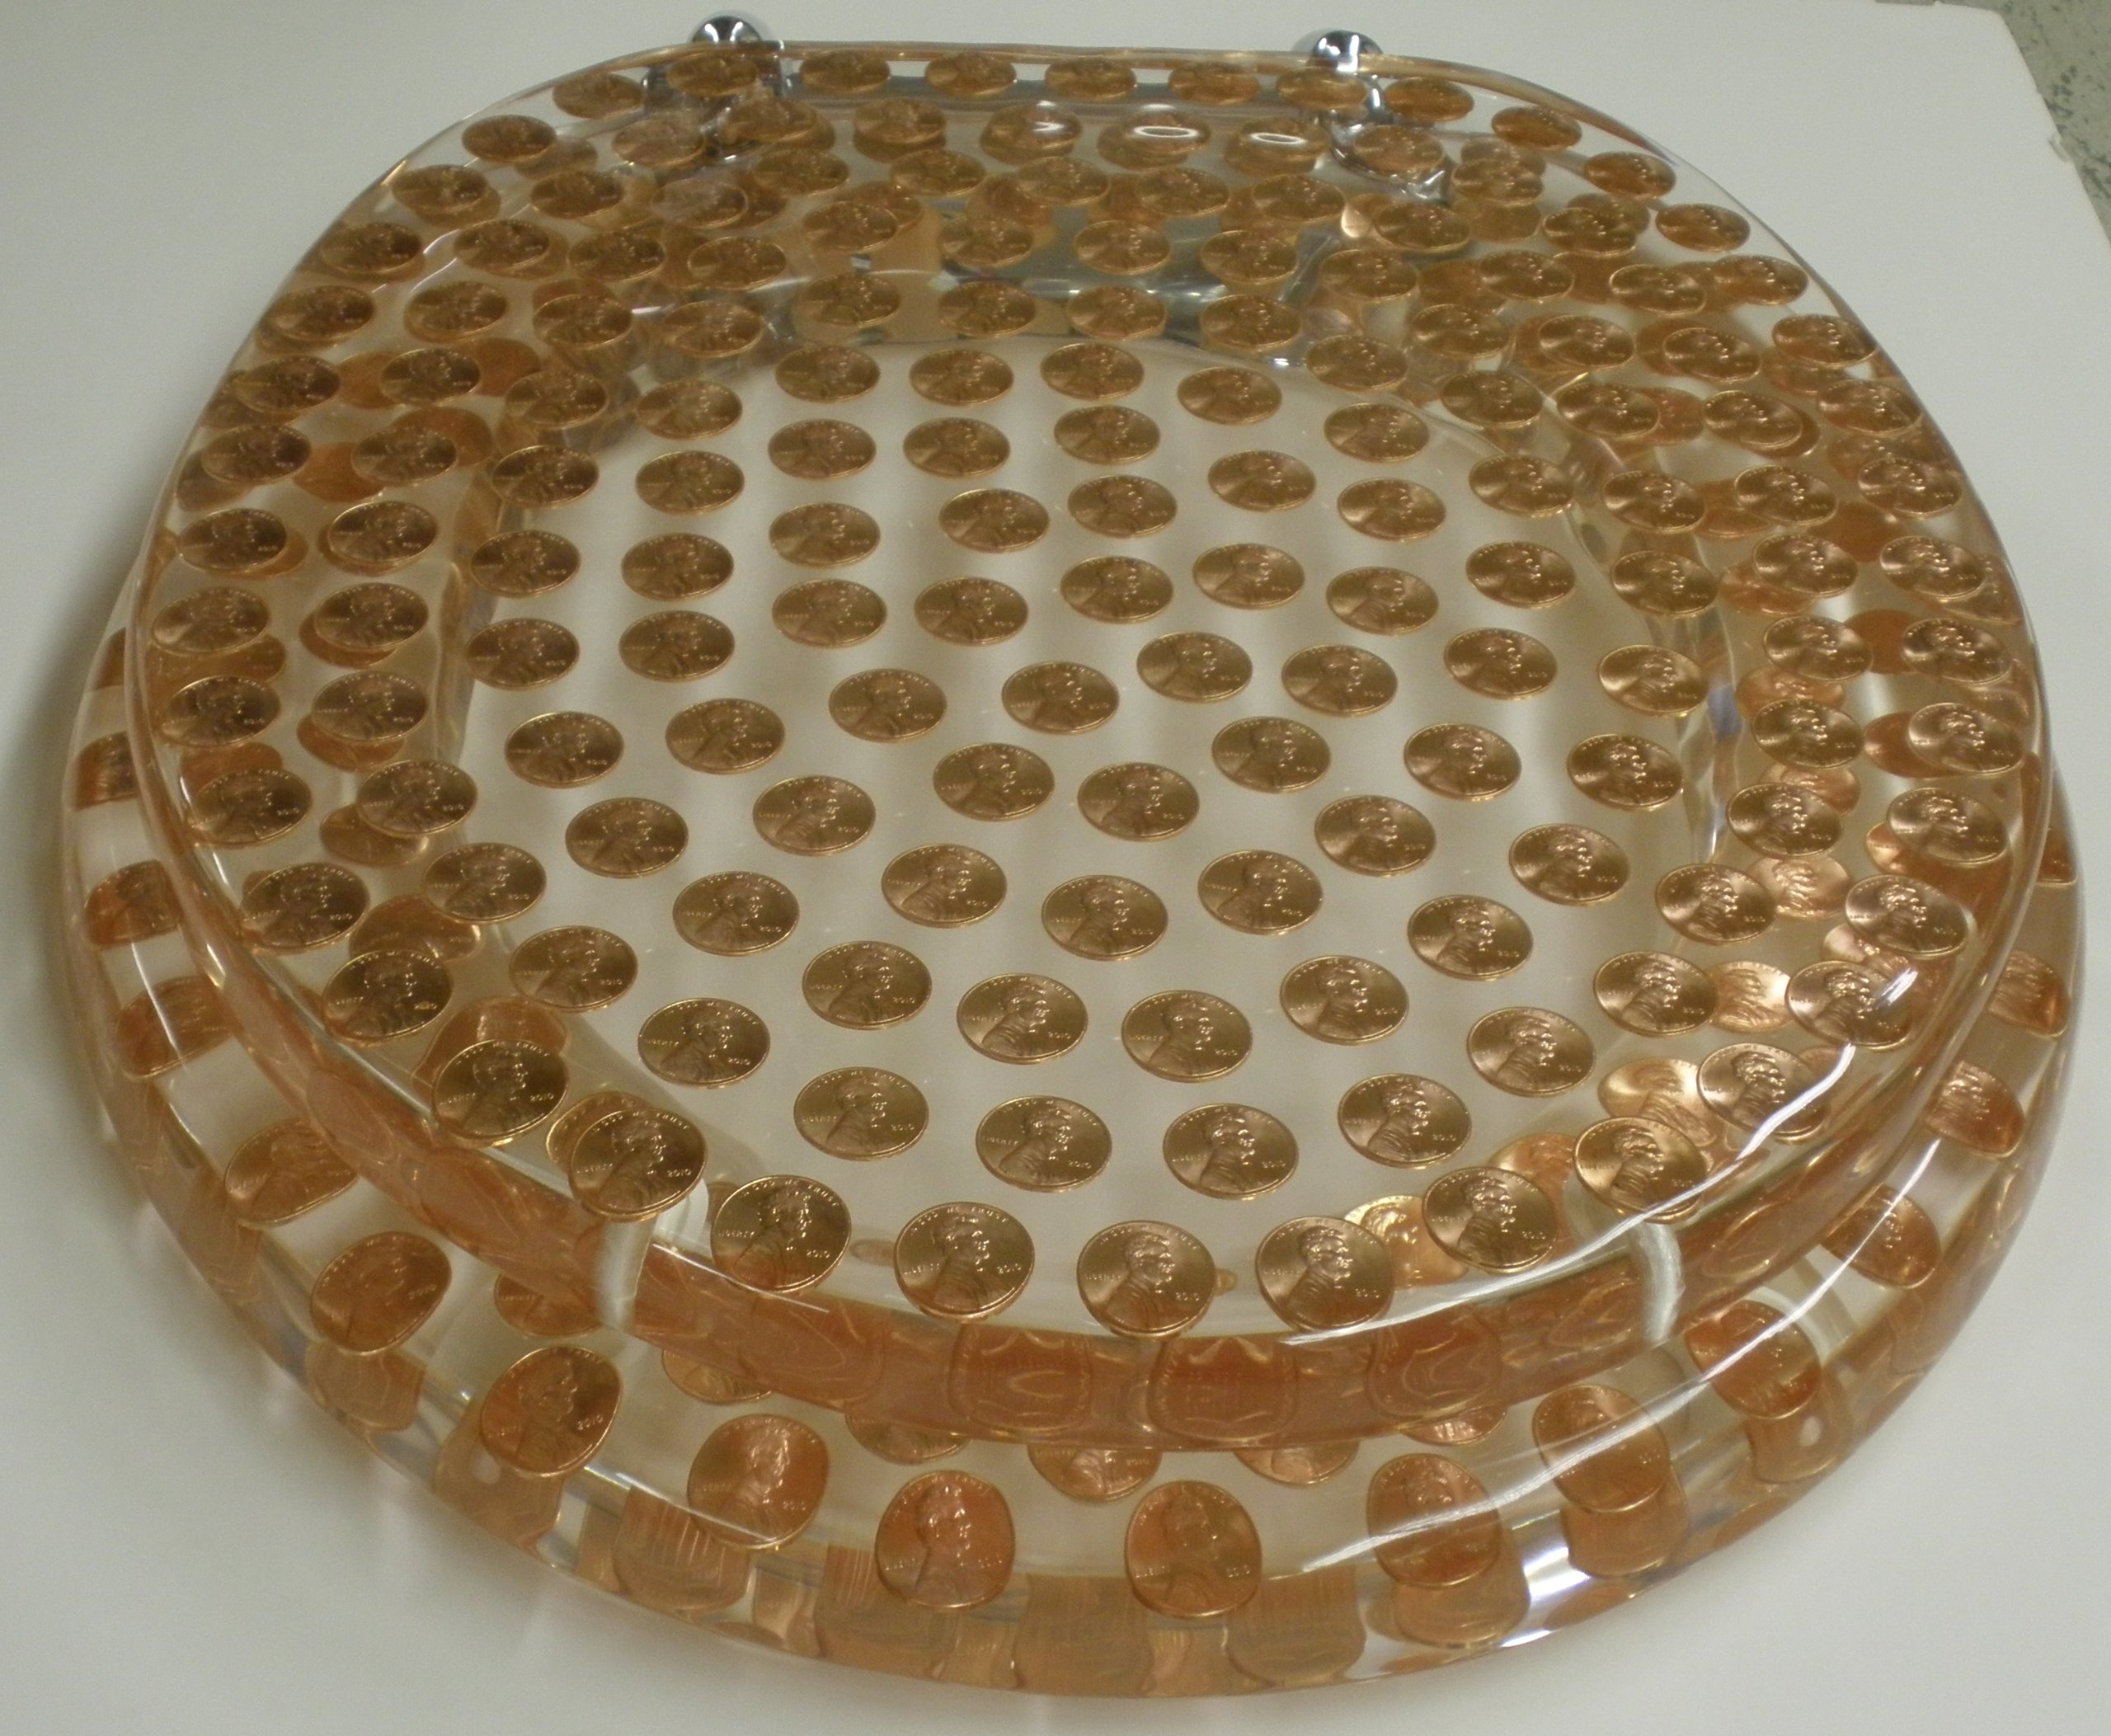 REAL U.S. PENNIES COINS MONEY LUCITE RESIN TOILET SEAT , Elongated Size Penny Toilet Seat (14.5'' x18'') by Centur (Image #3)